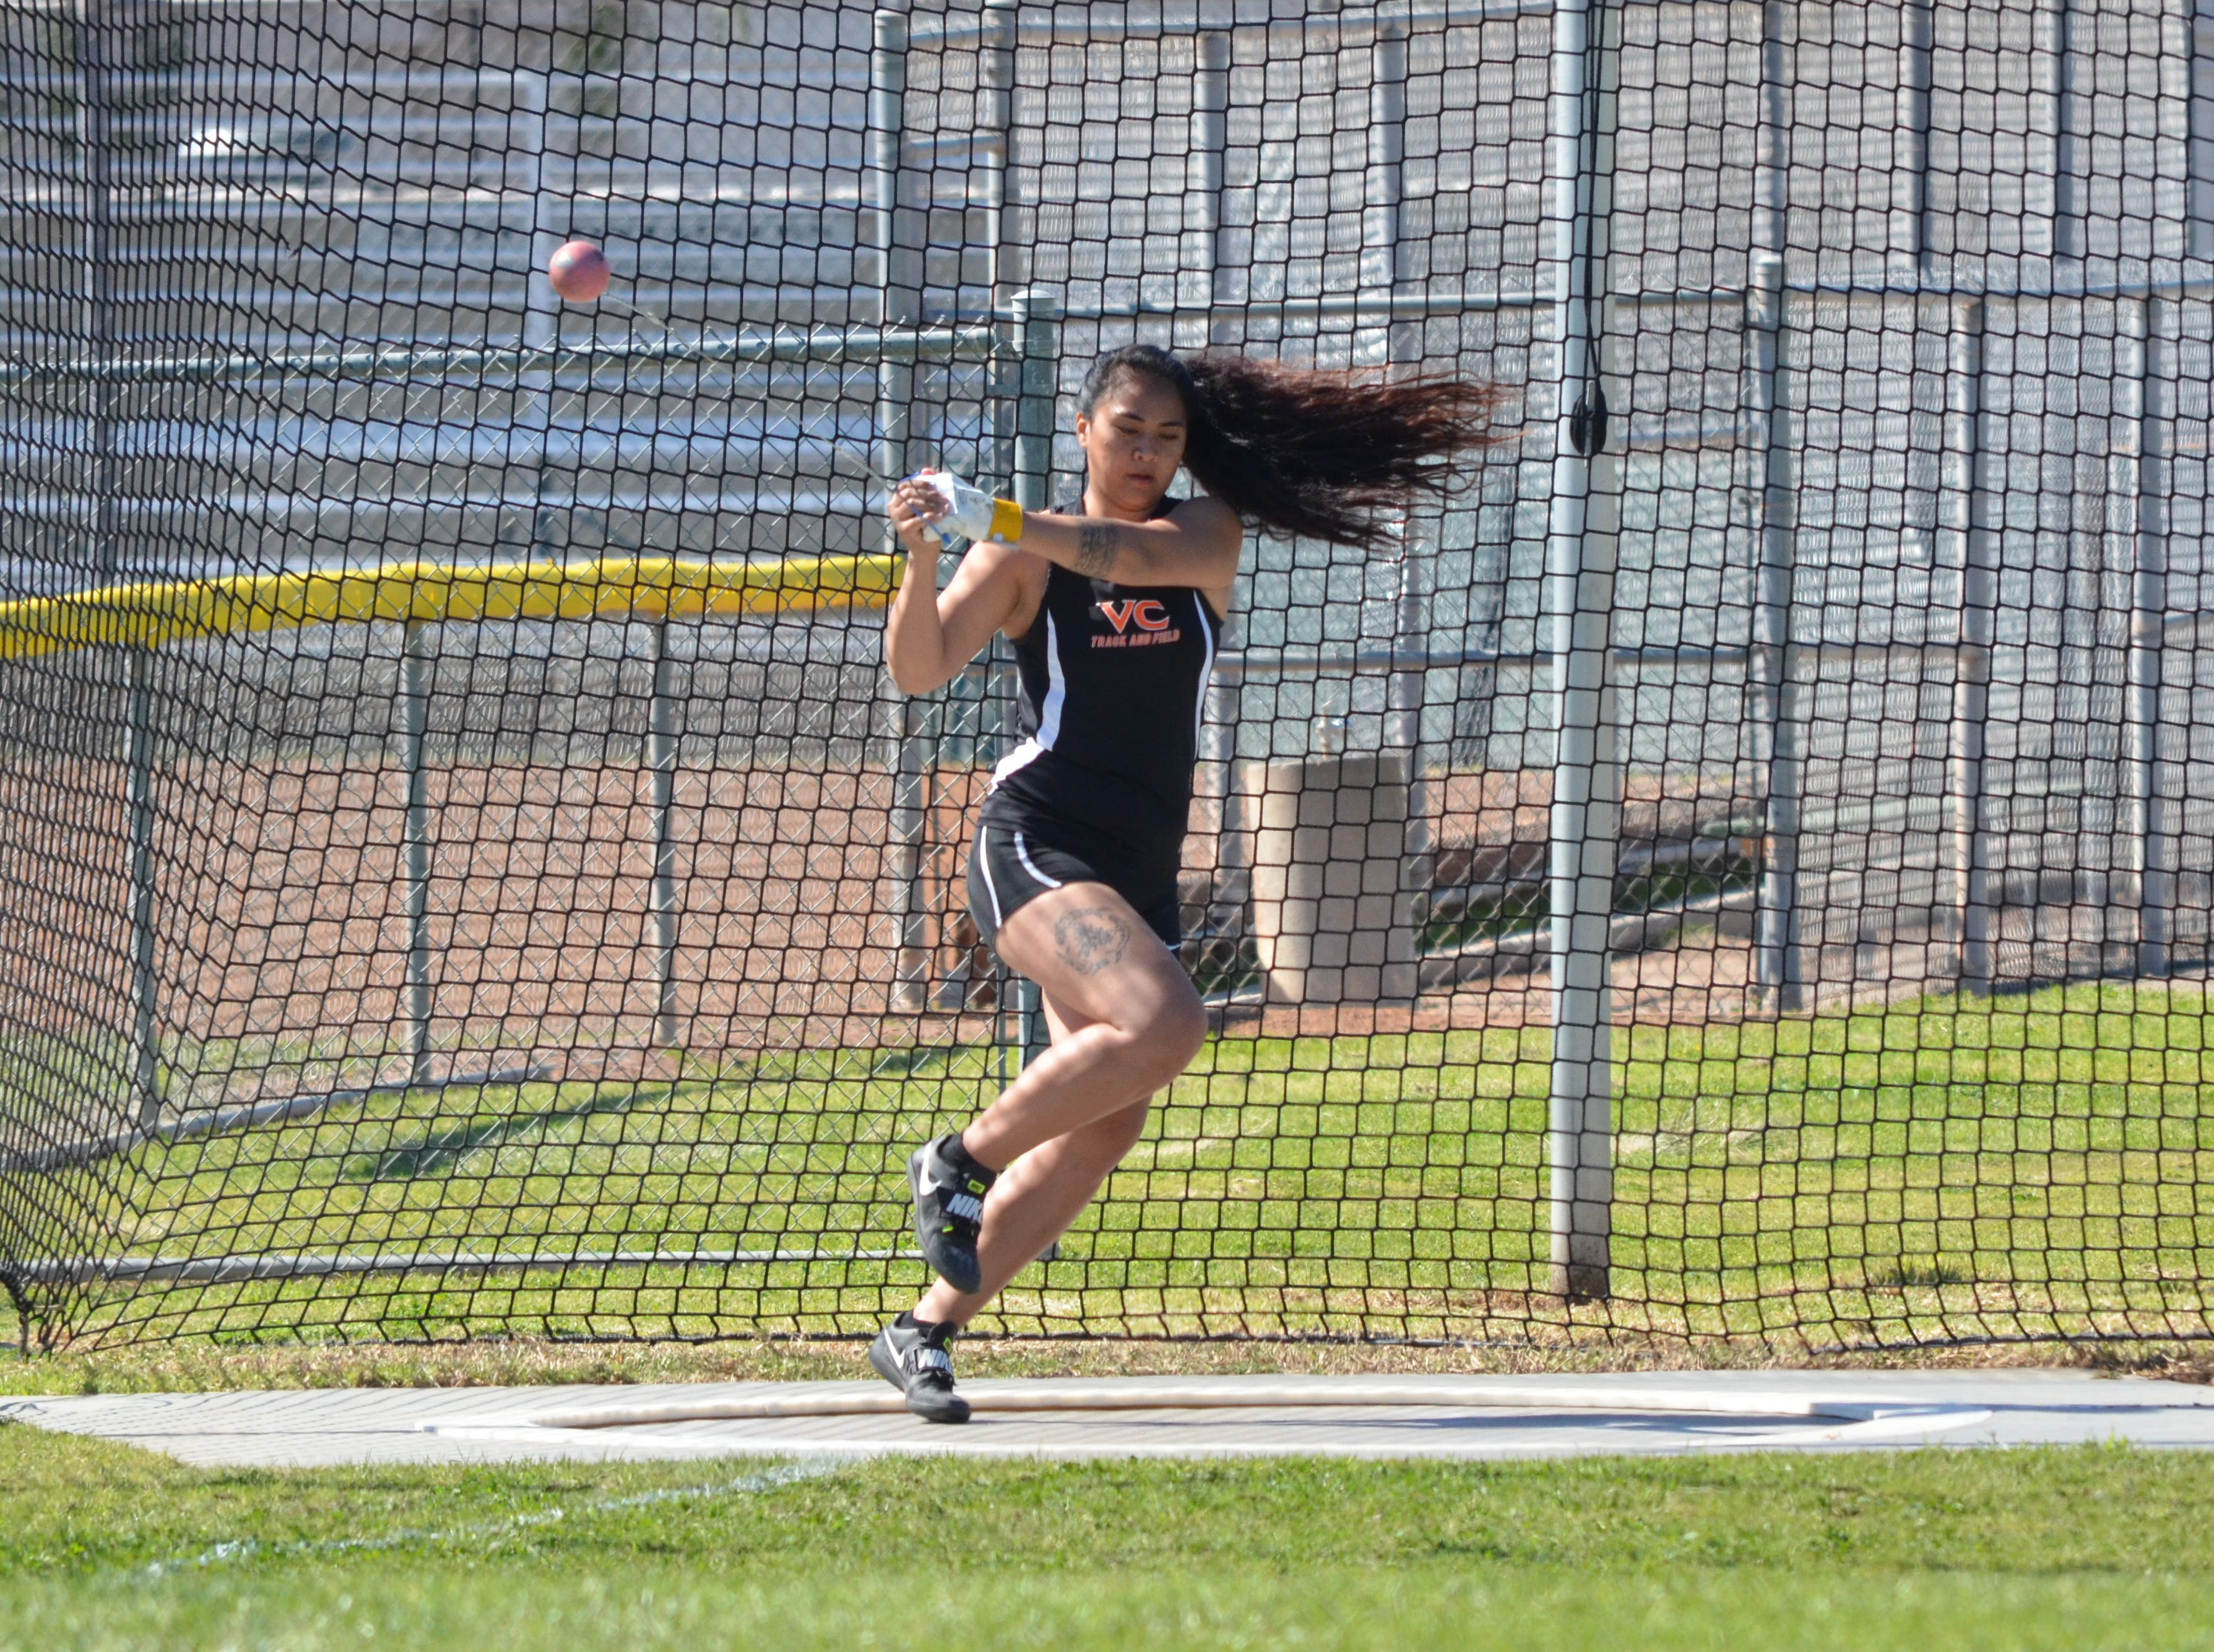 Ventura College sophomore Leslie Valoaga finished fifth in the hammer throw at the WSC Championships on April 26. The Channel Islands High graduate qualified for regionals in all four throwing events.